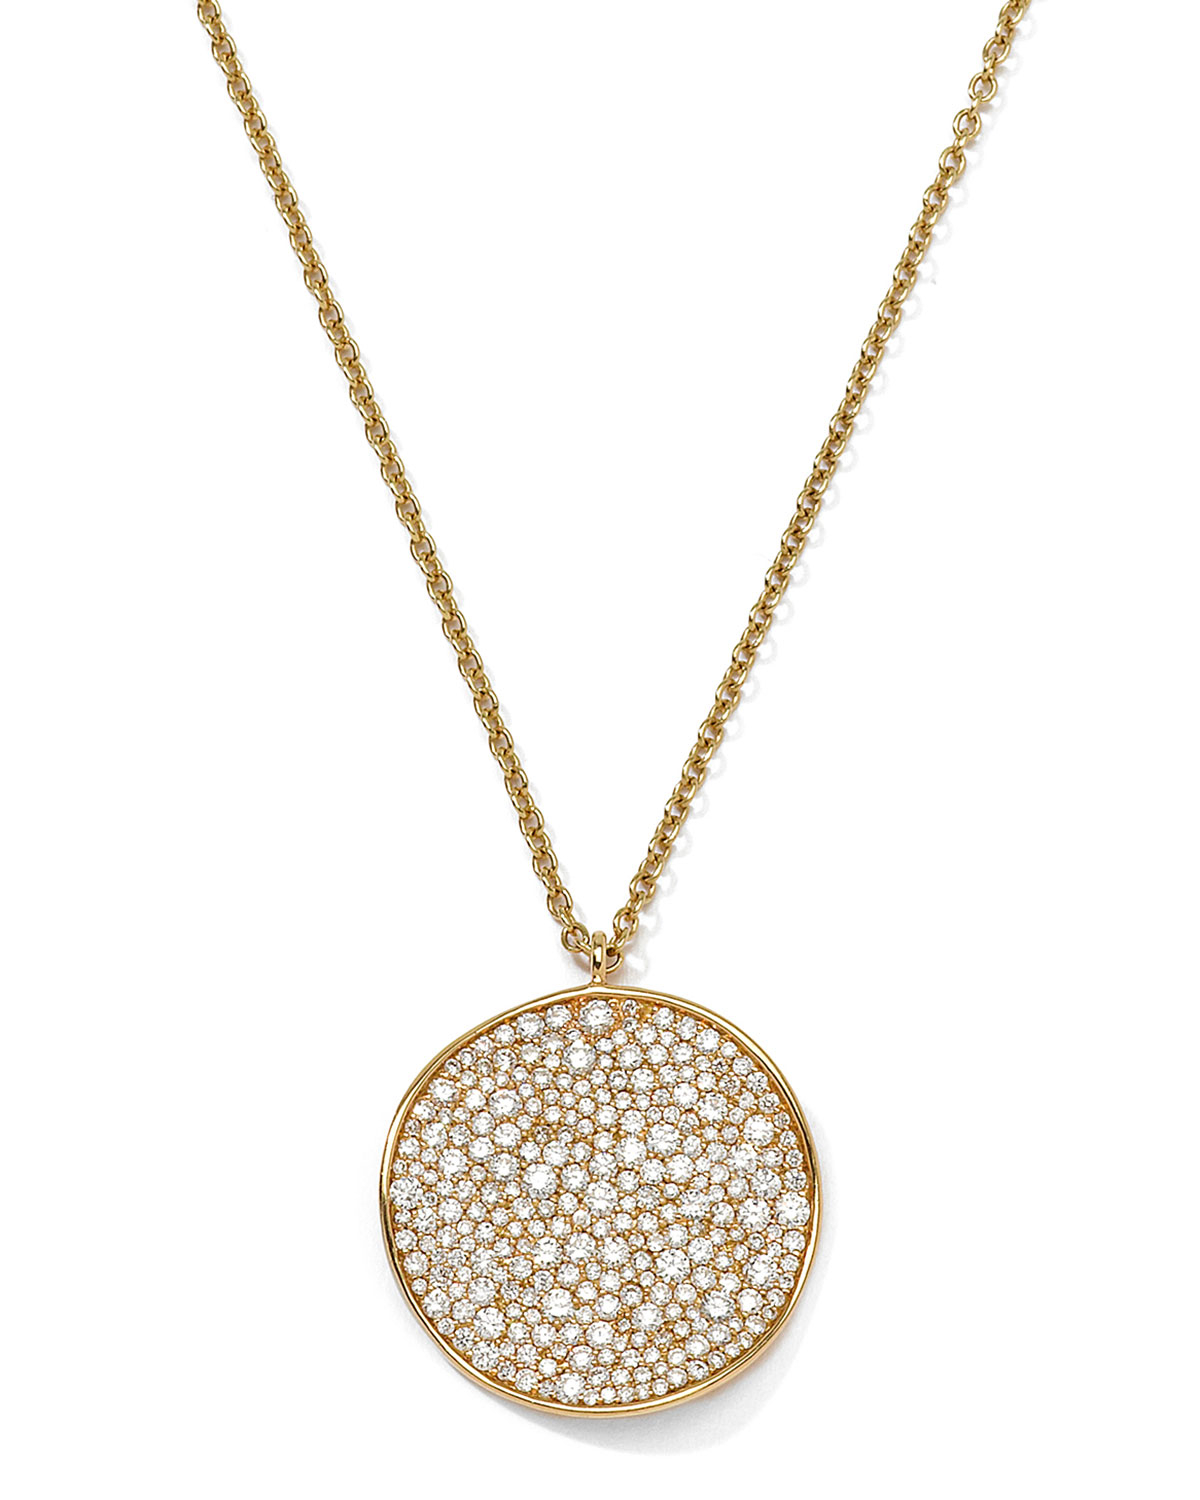 ippolita 18k gold stardust wavy disc pendant necklace with